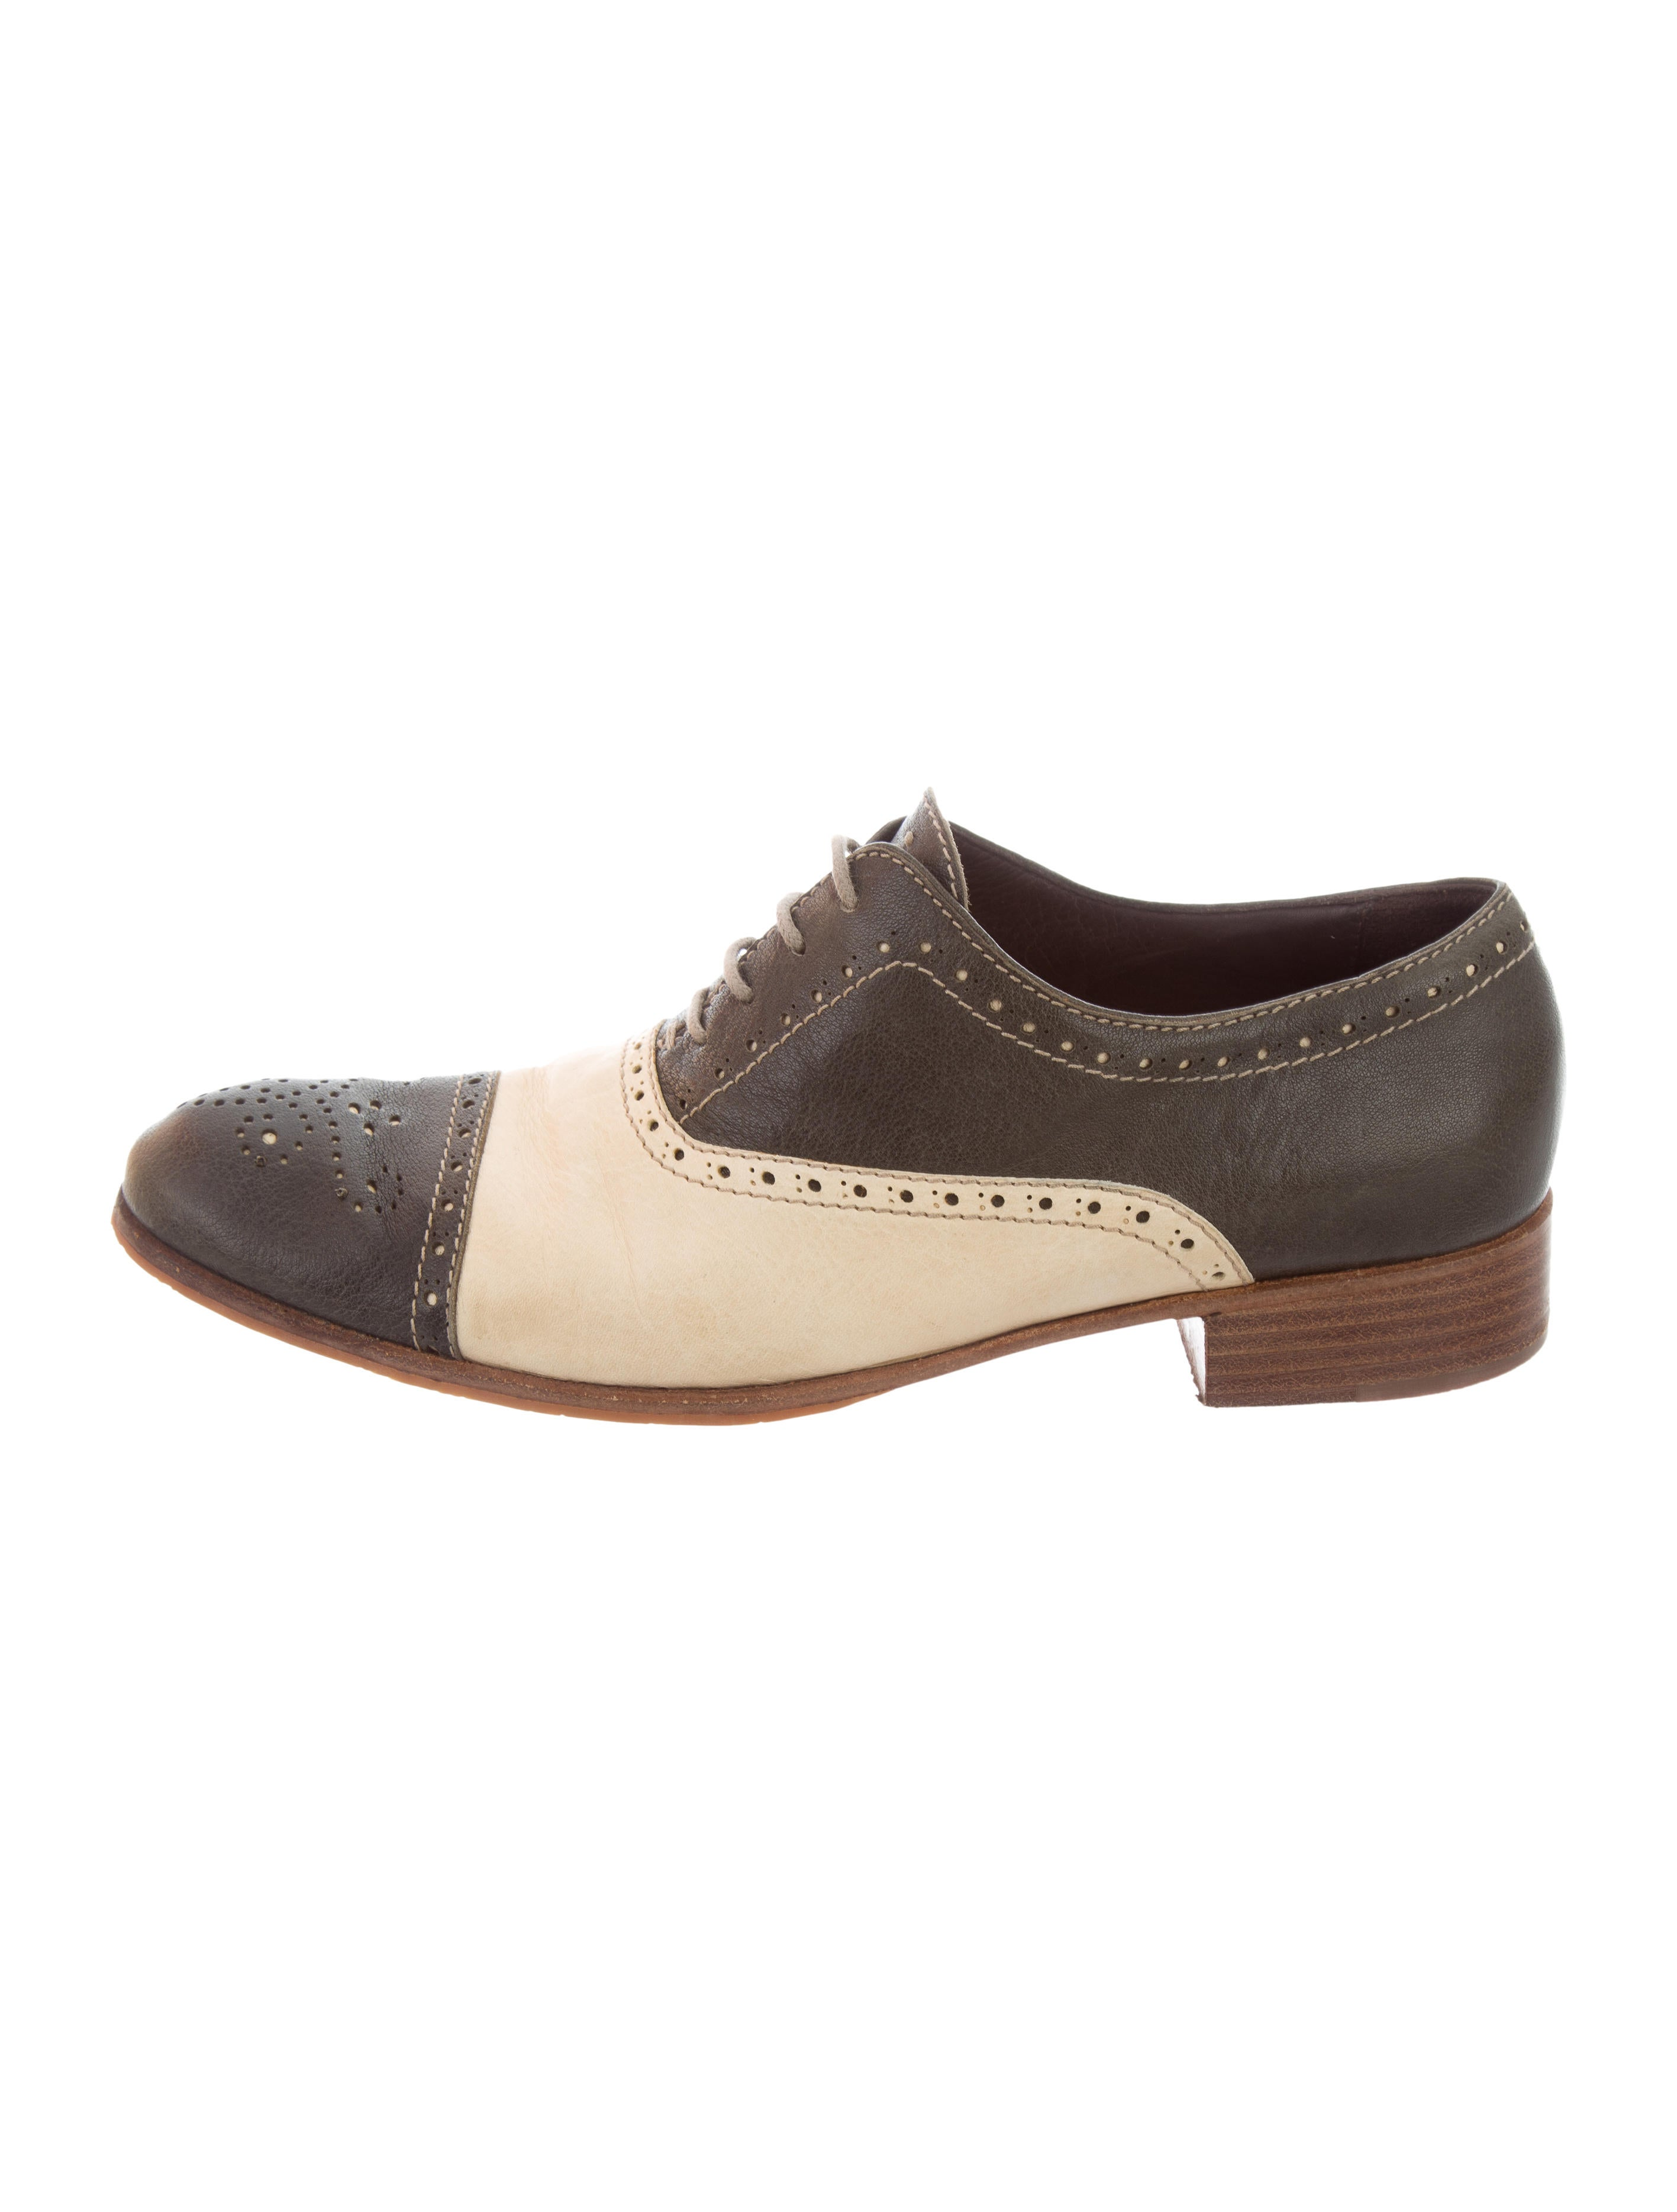 Henry Beguelin Lace-up shoes DXNg8QanG